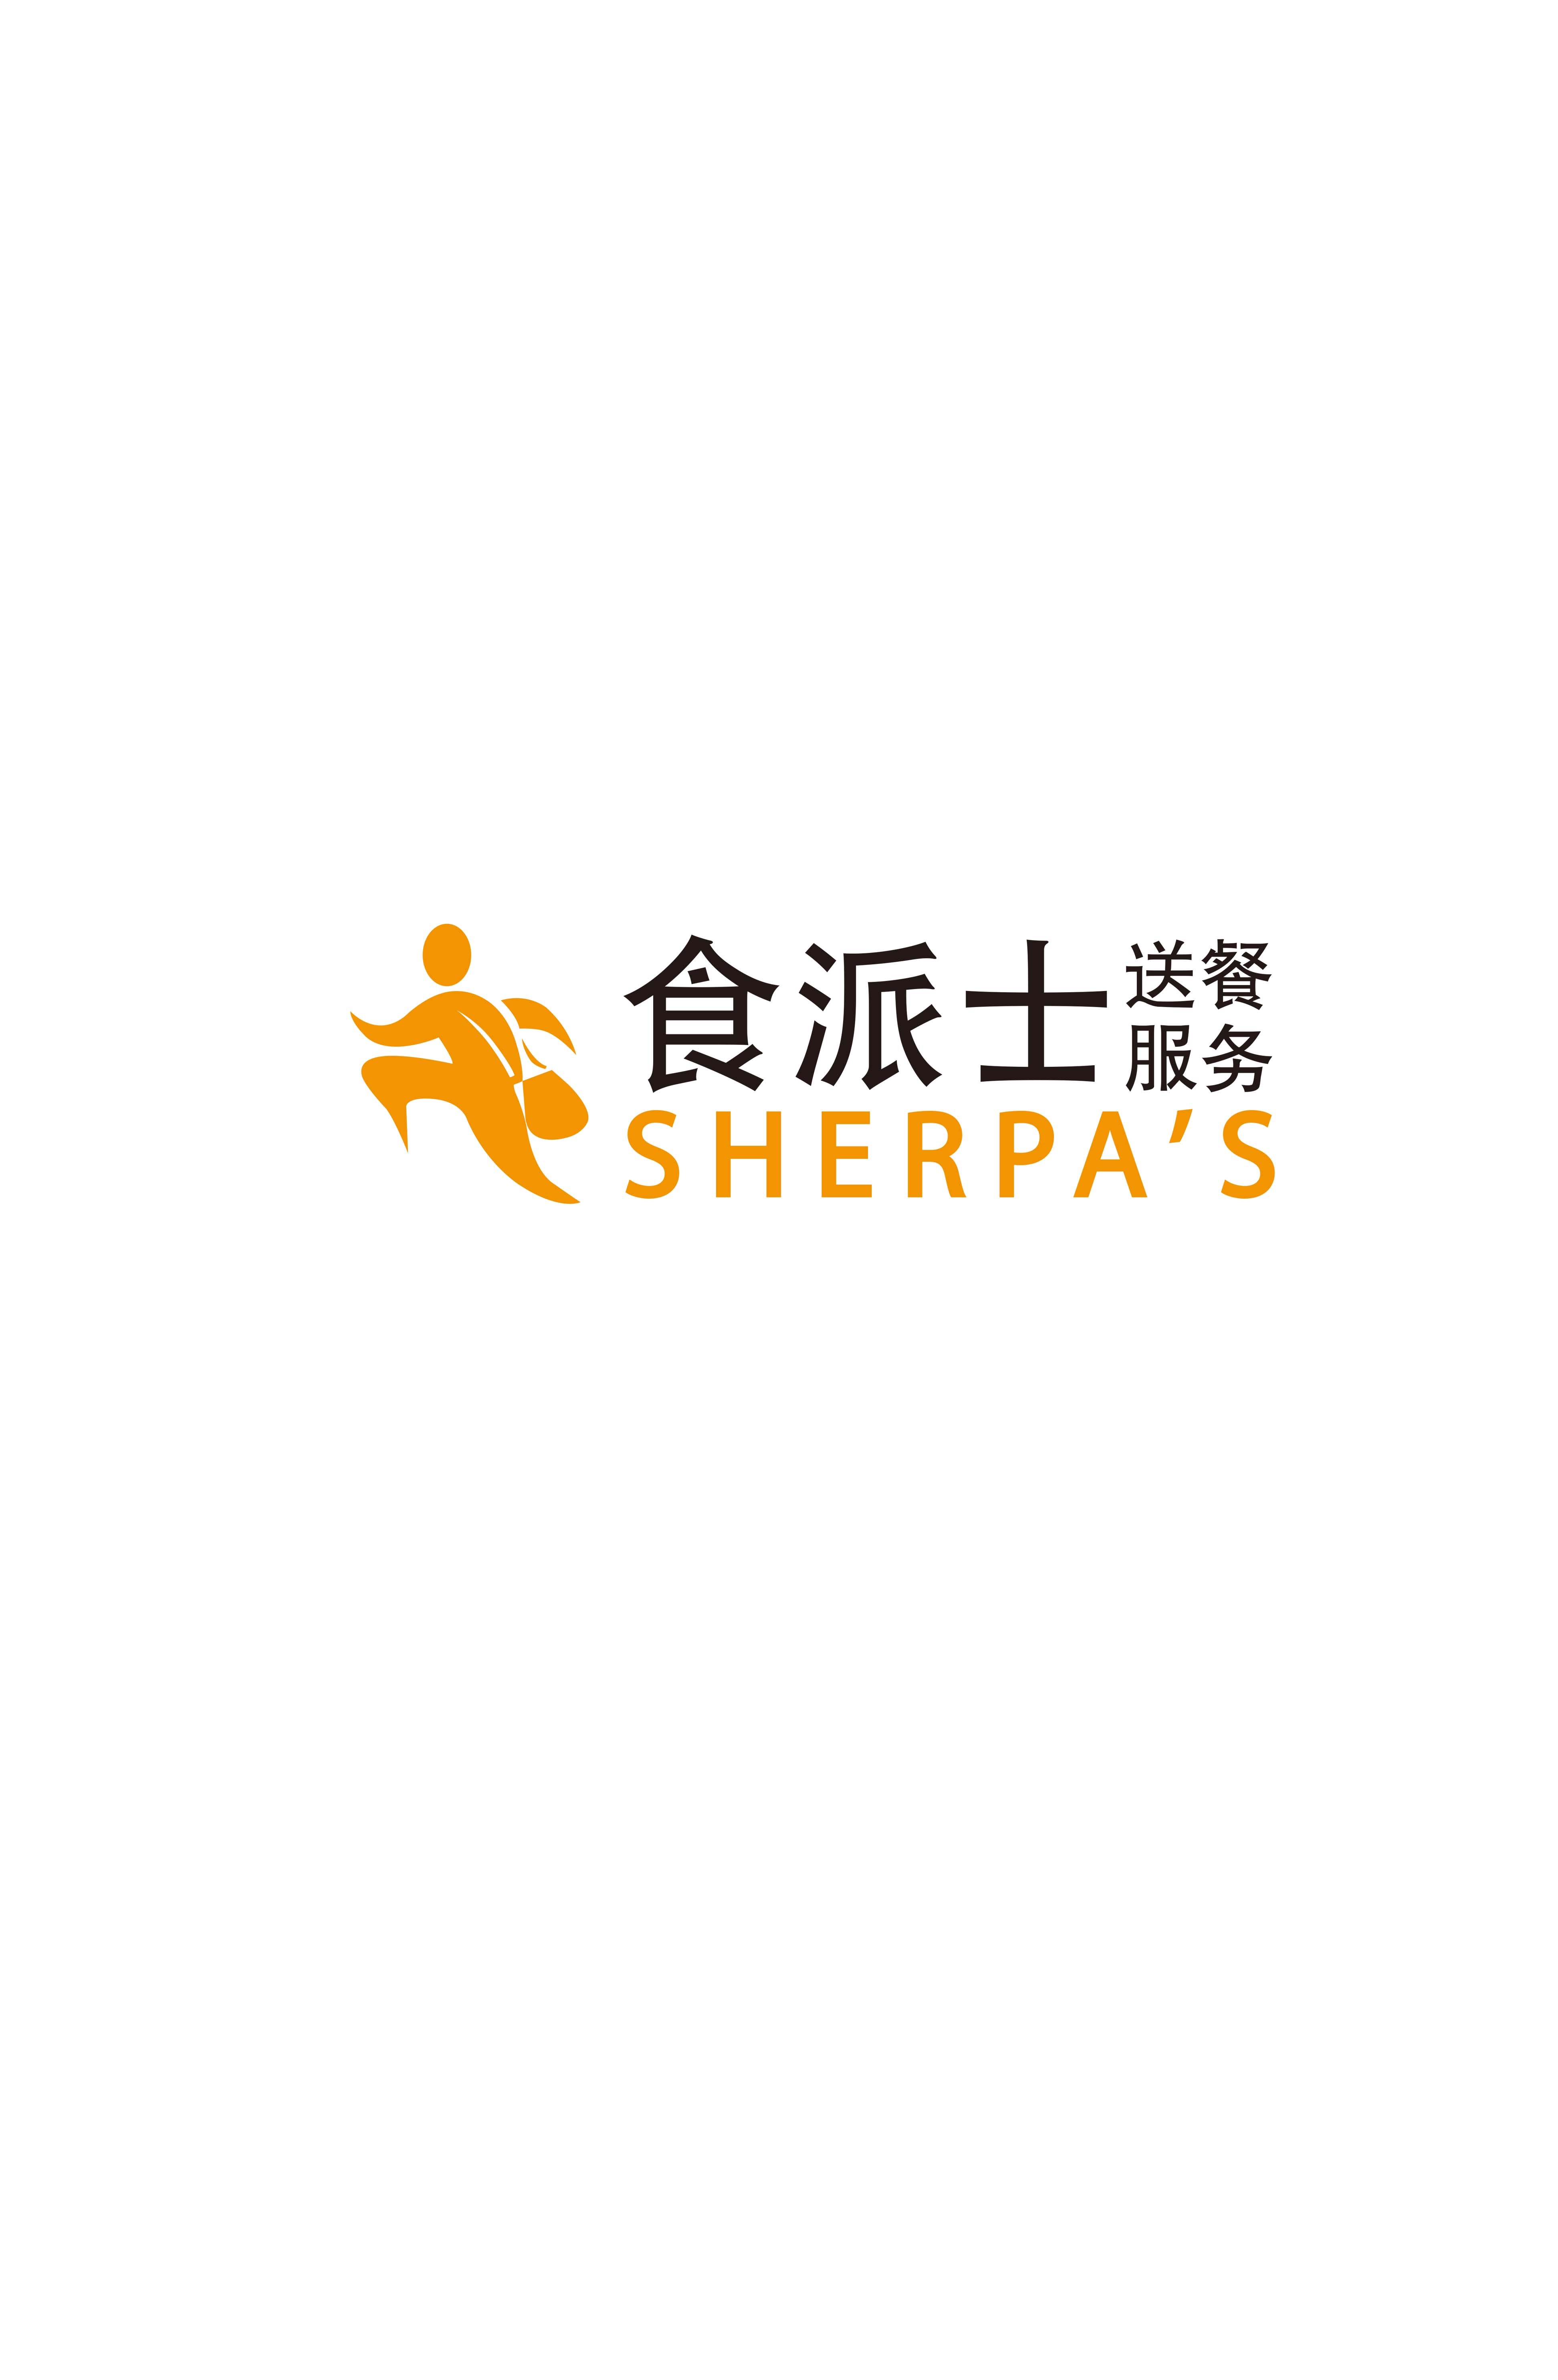 sherpa-s--special-thanks.jpg